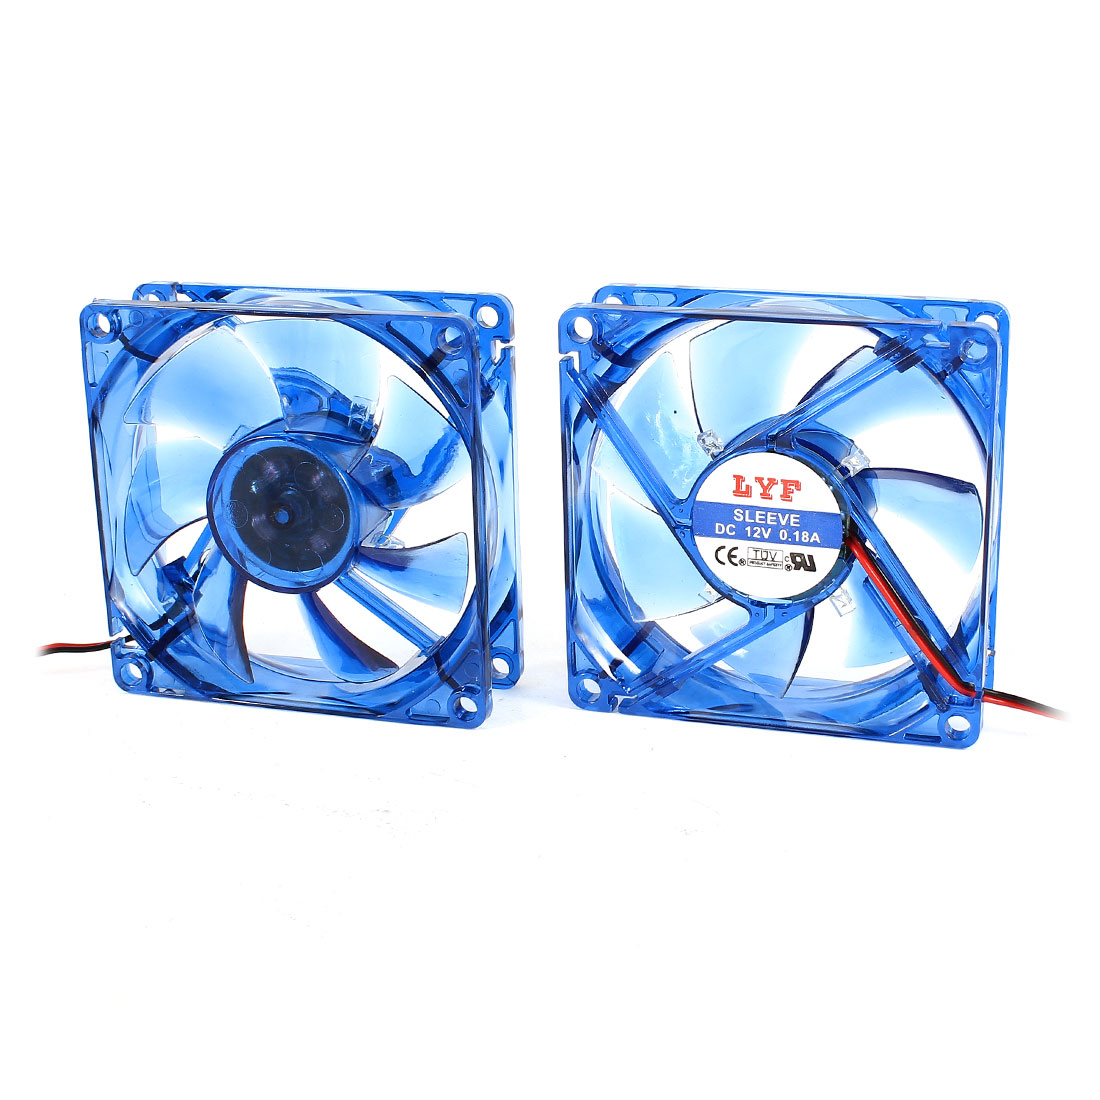 2pcs DC 12V 0.18A 80mm 4 Pin Connector Cooling Fan for Computer Case CPU Cooler